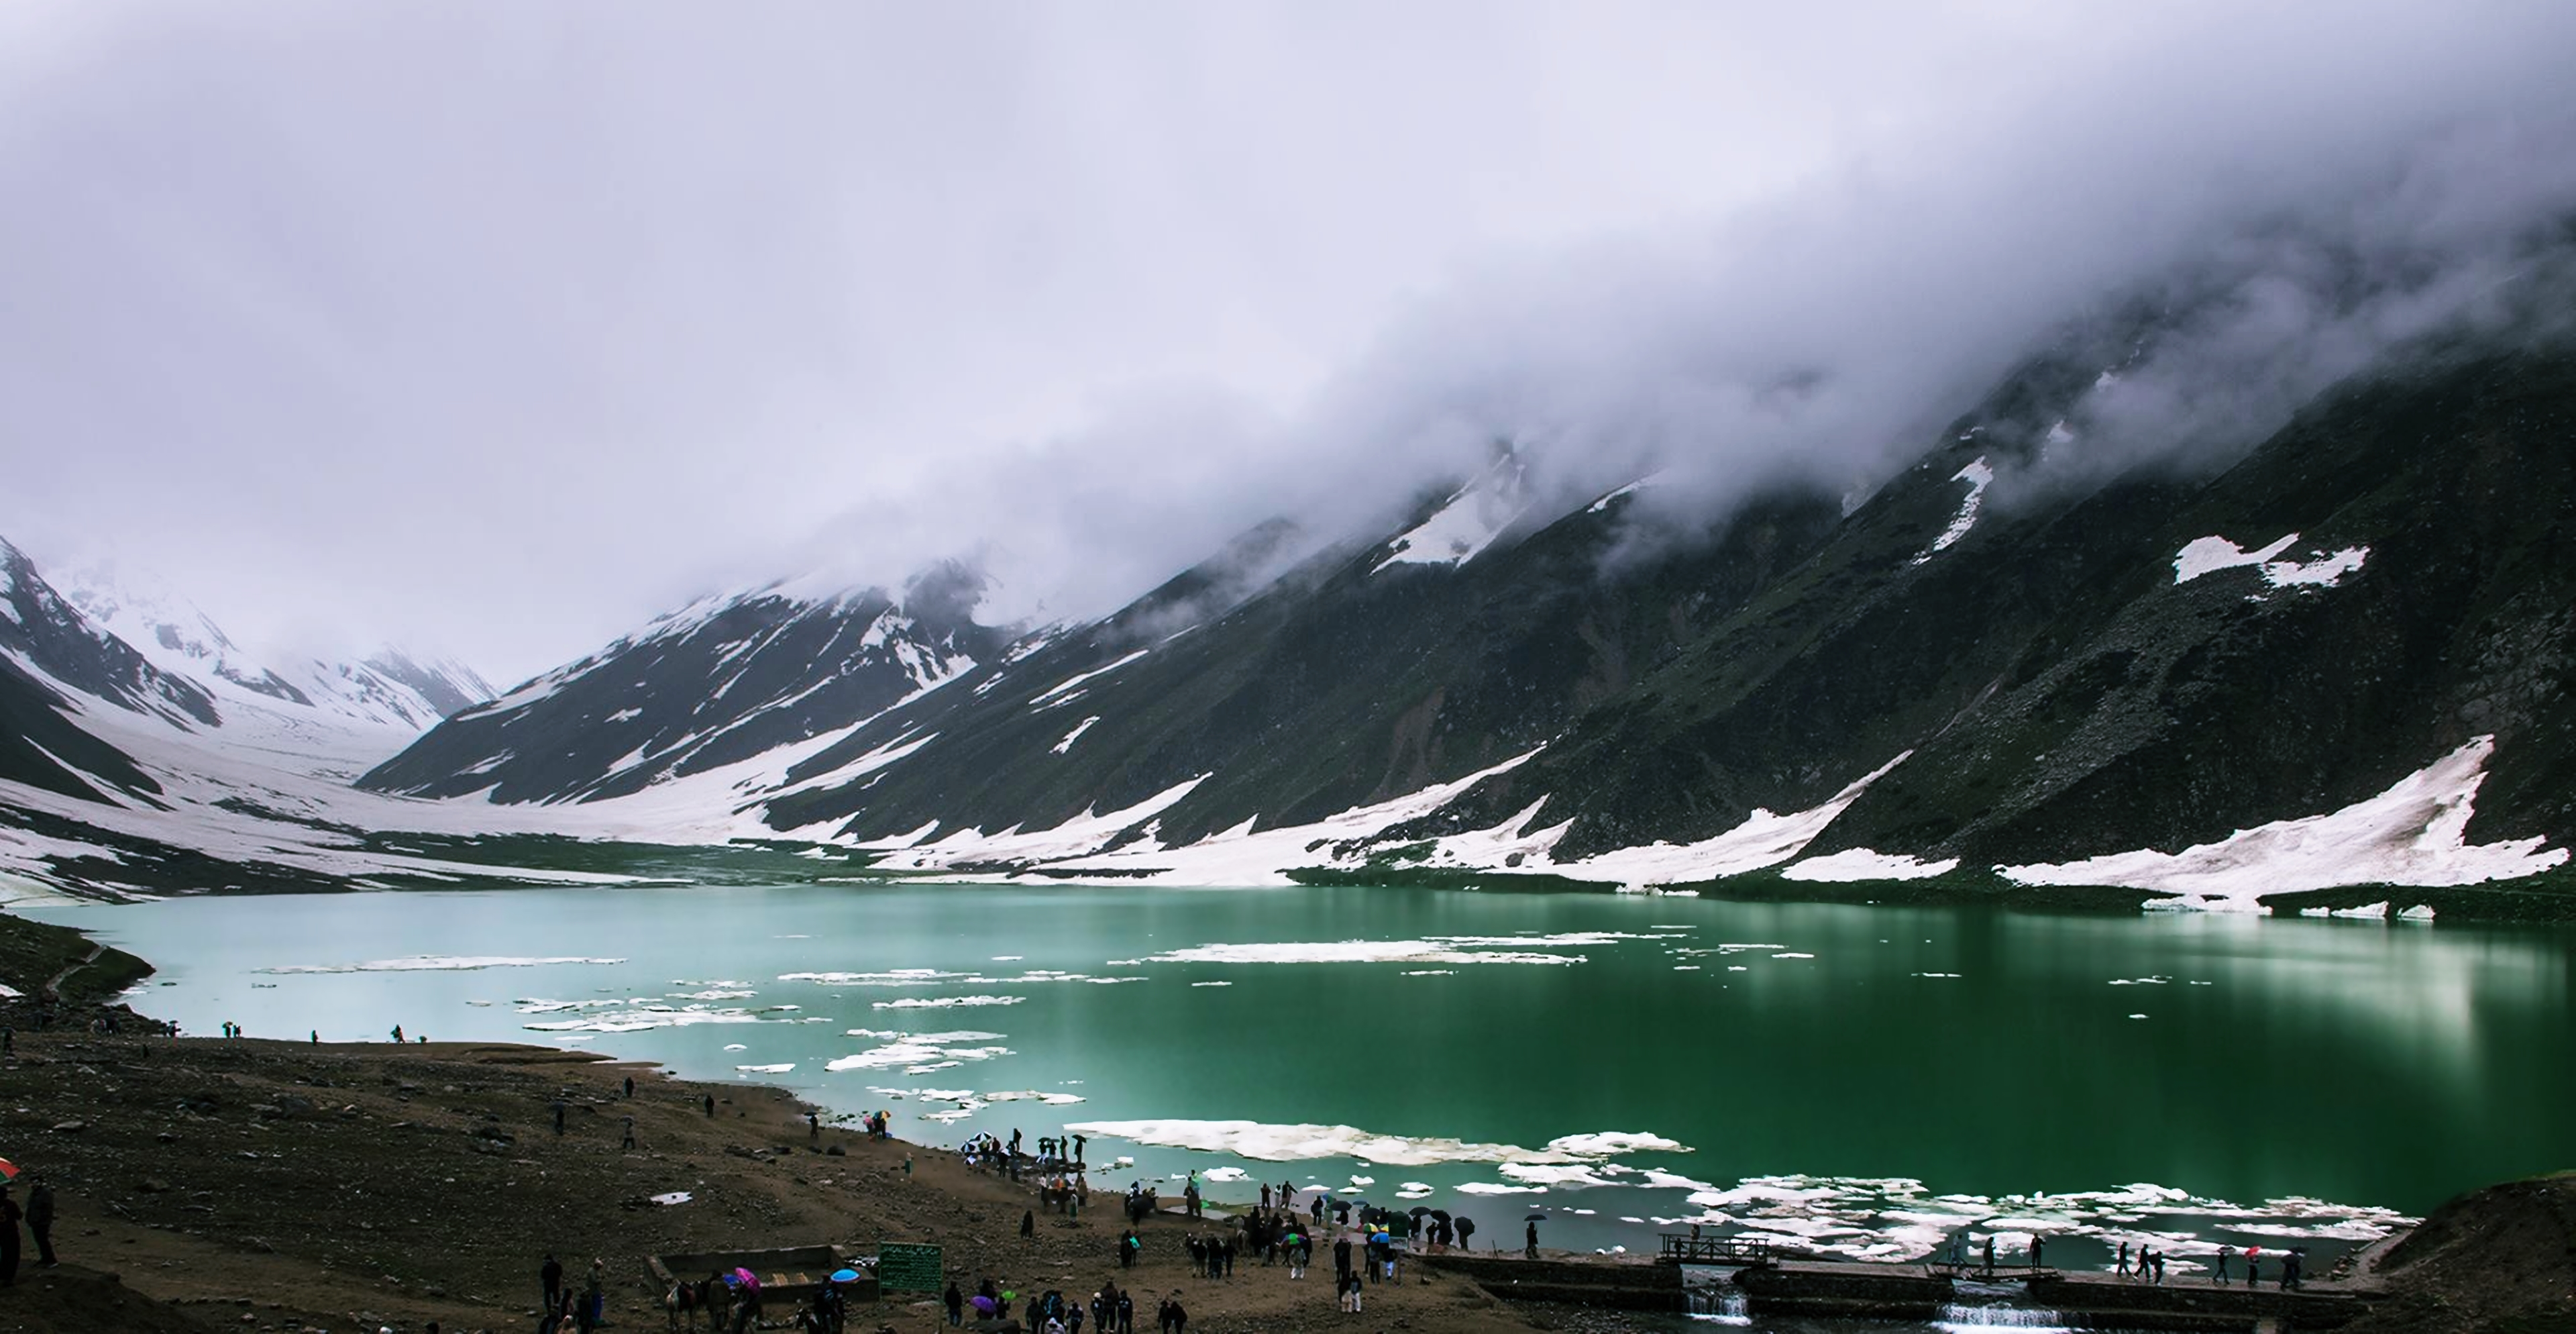 lakes of pakistan hd wallpaper background image 3840x1988 idlakes of pakistan